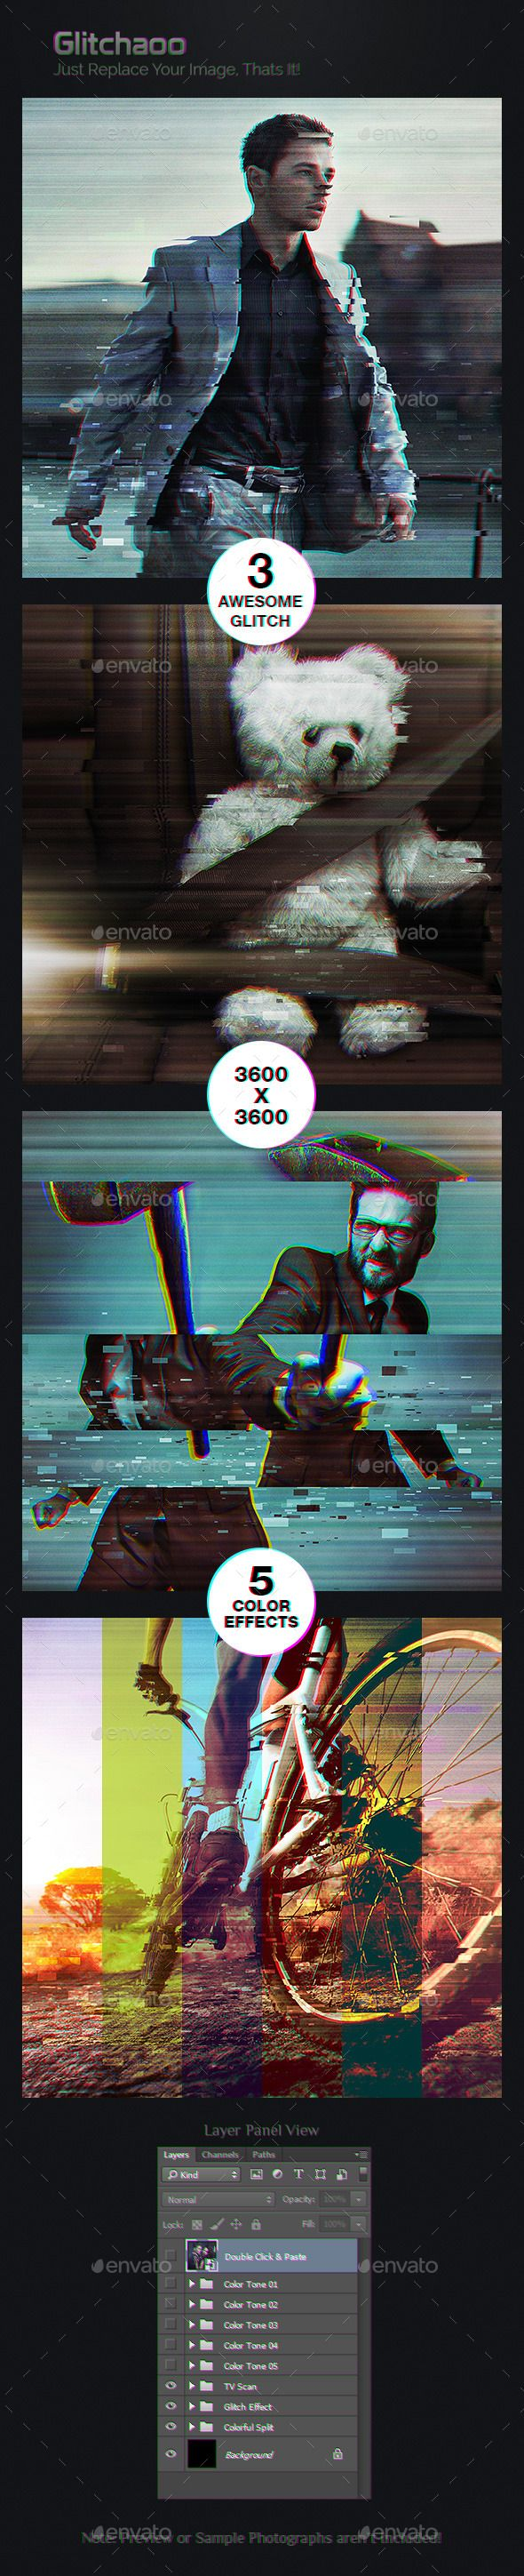 Glitchaoo ¨C Extreme Glitch Photoshop Photo Effect Template! Specification:3 PSD Files! 5 Color Effects! 3000¡Á3000 Pixel Resolution